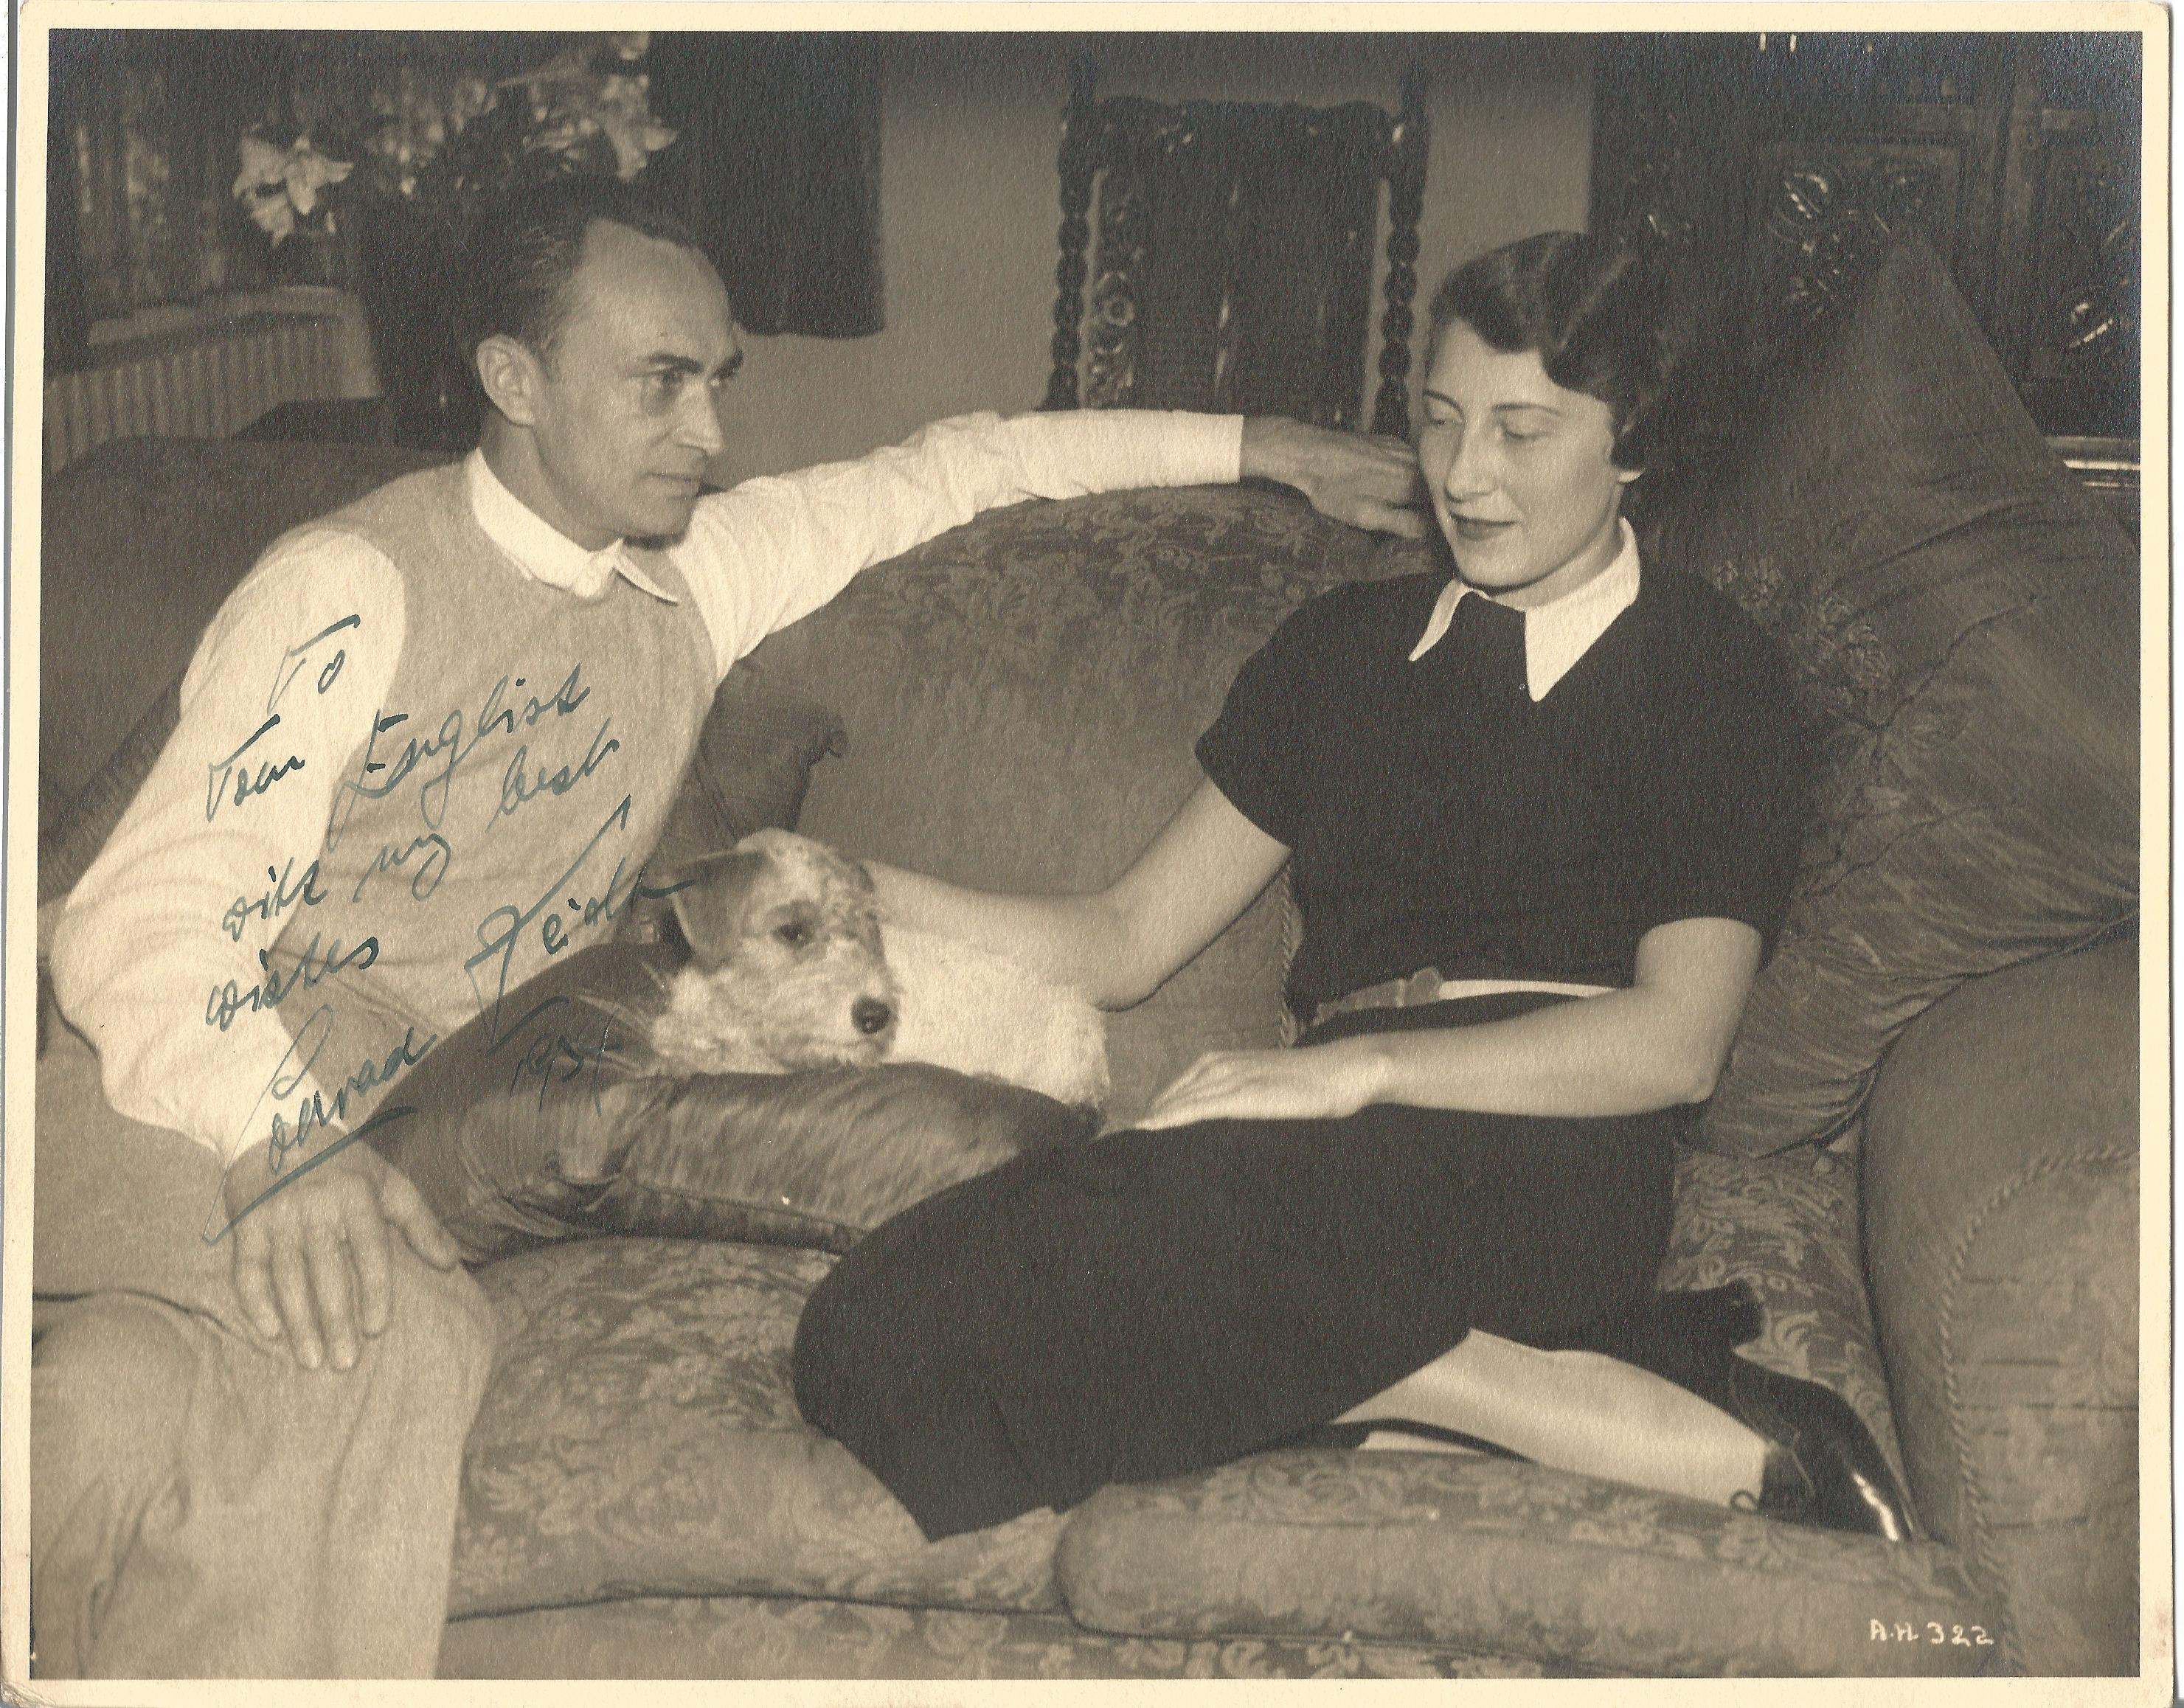 Actor Conrad Veidt vintage candid signed 10x8 black and white photo at home with his wife and dog,